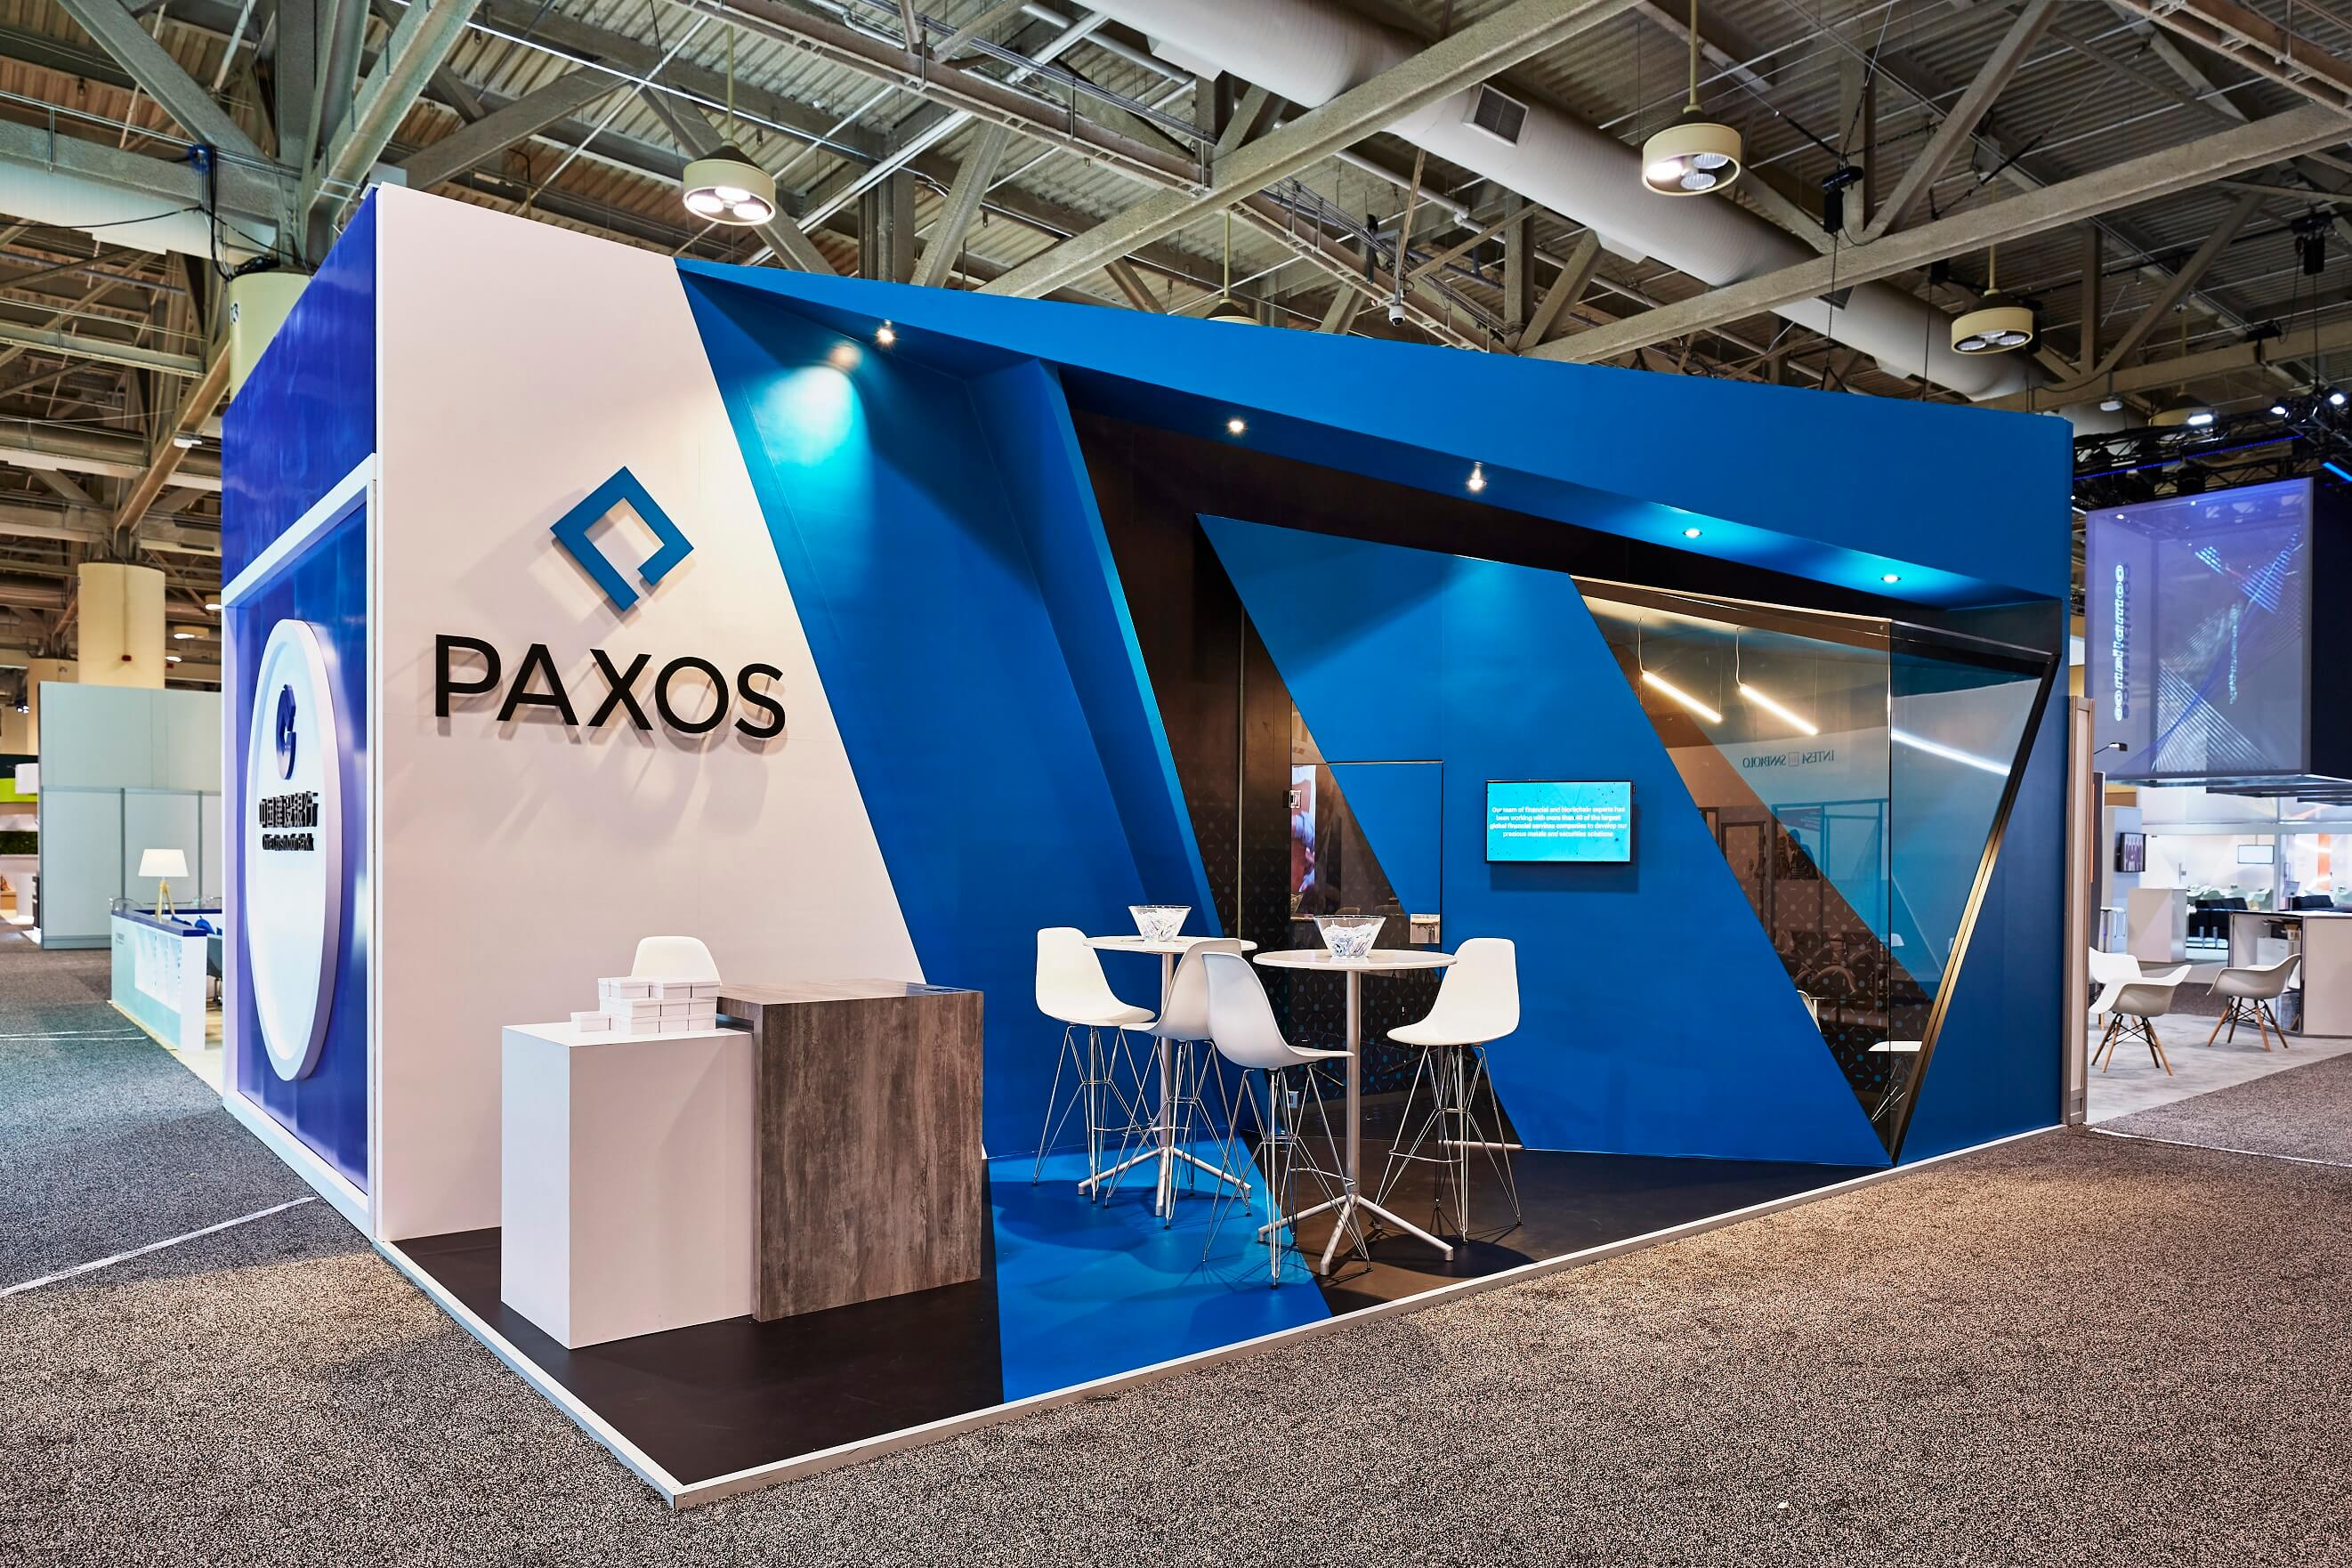 Paxos at Sibos 2017